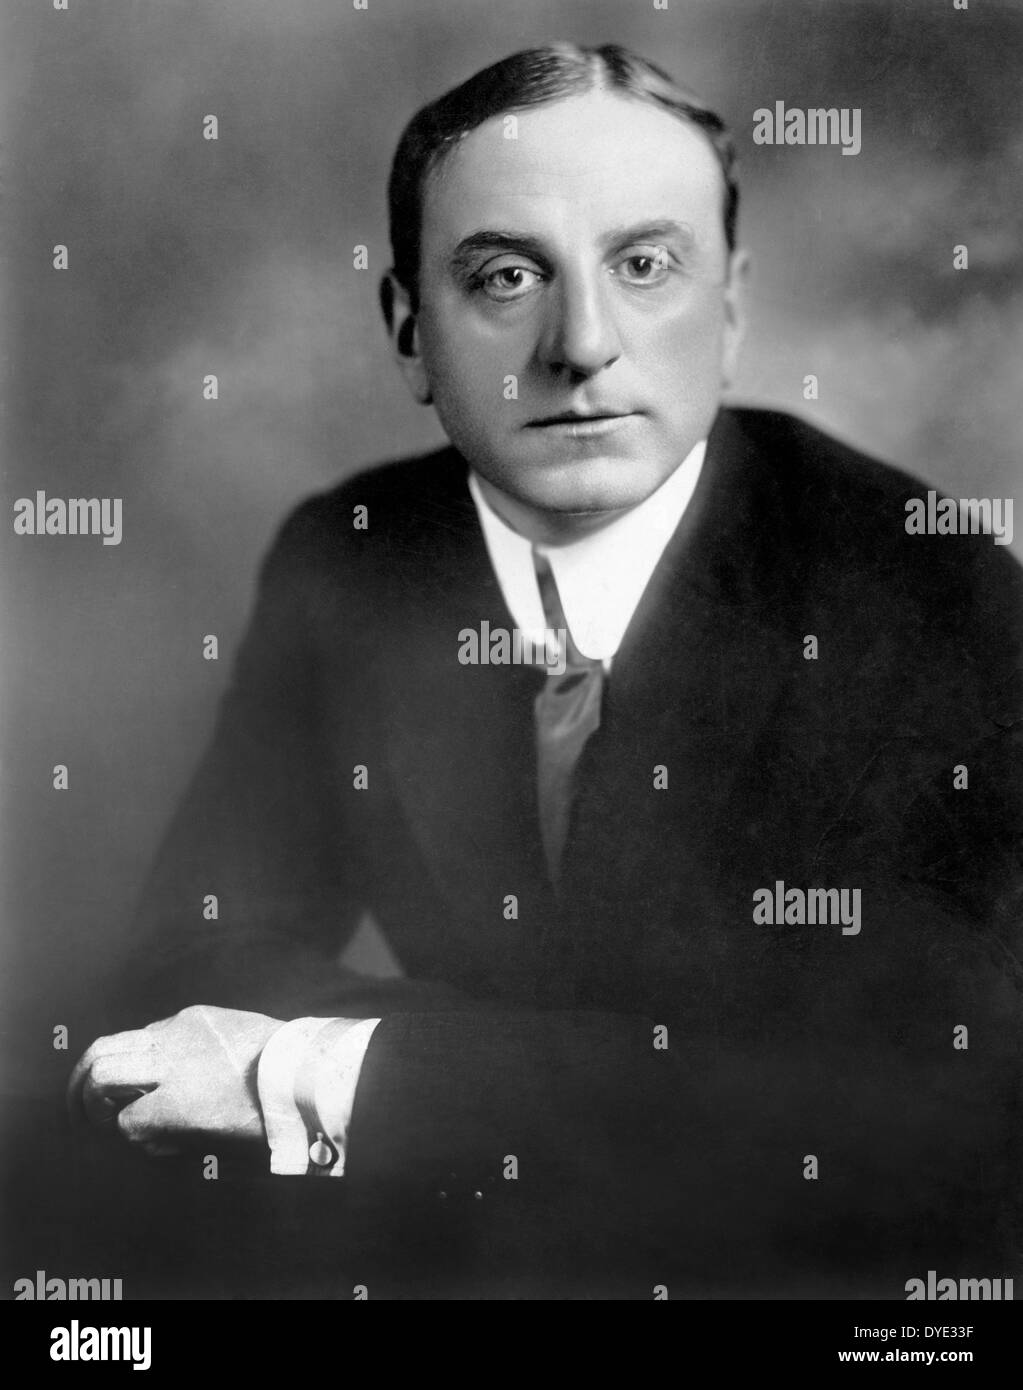 Maurice Tourneur, French Film Director, Portrait, circa 1920 - Stock Image